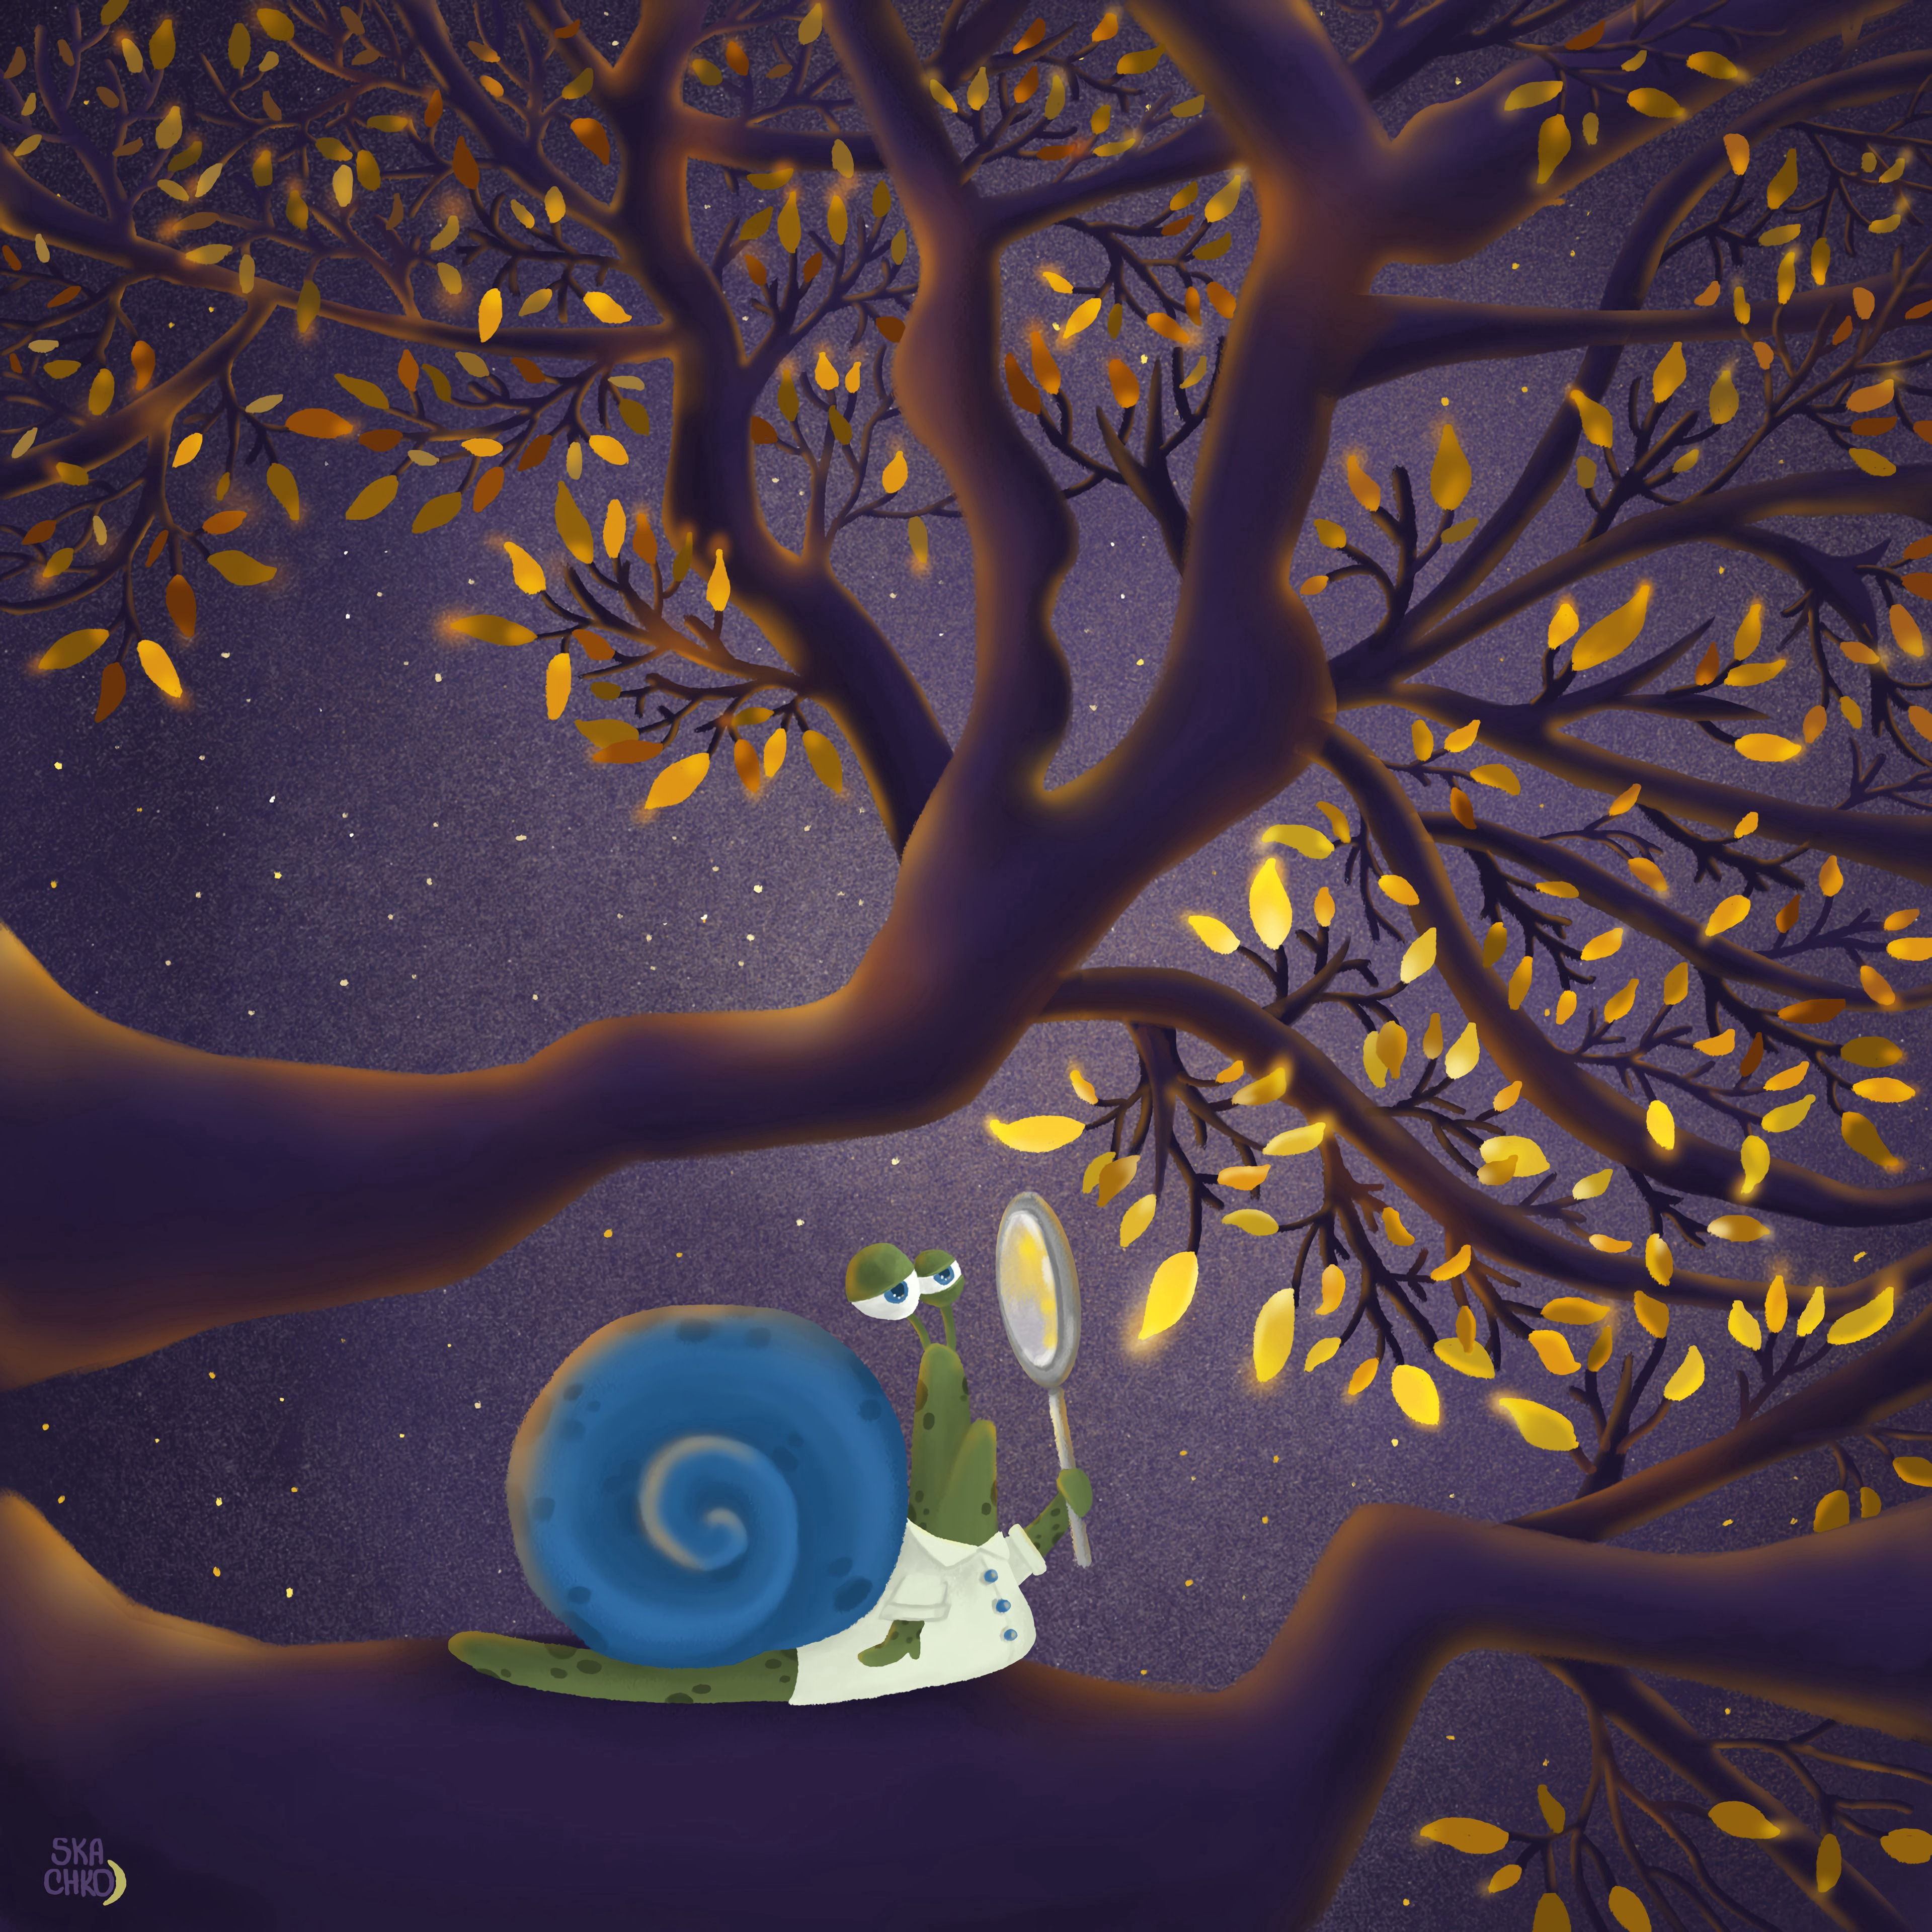 59002 download wallpaper Snail, Branch, Magnifier, Leaves, Art, Cool screensavers and pictures for free